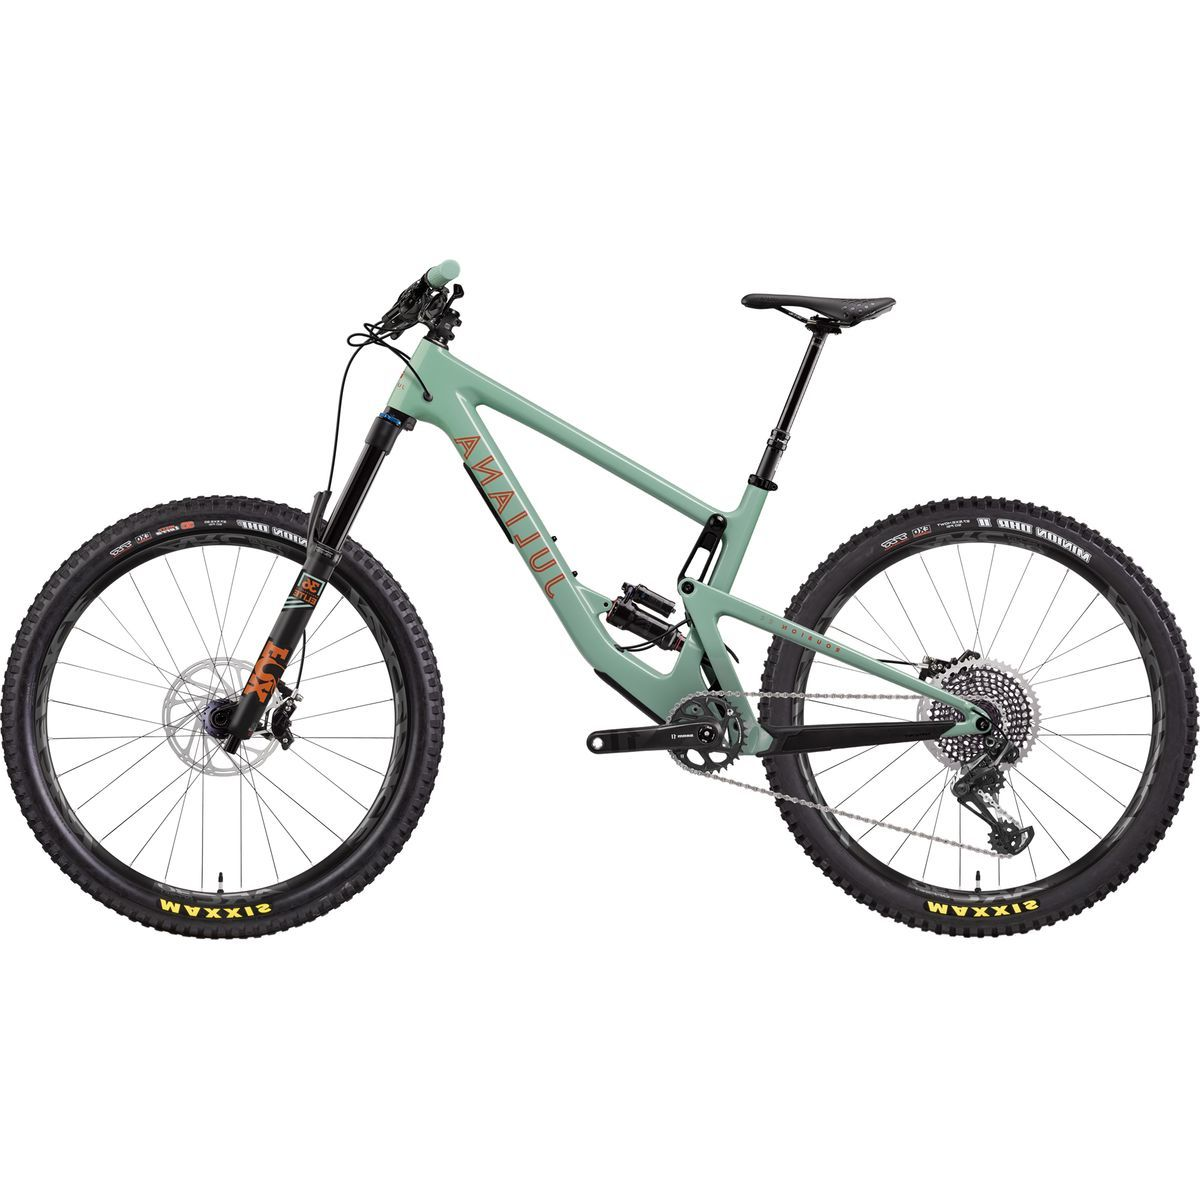 Juliana Roubion Carbon CC X01 Eagle Mountain Bike - Women's